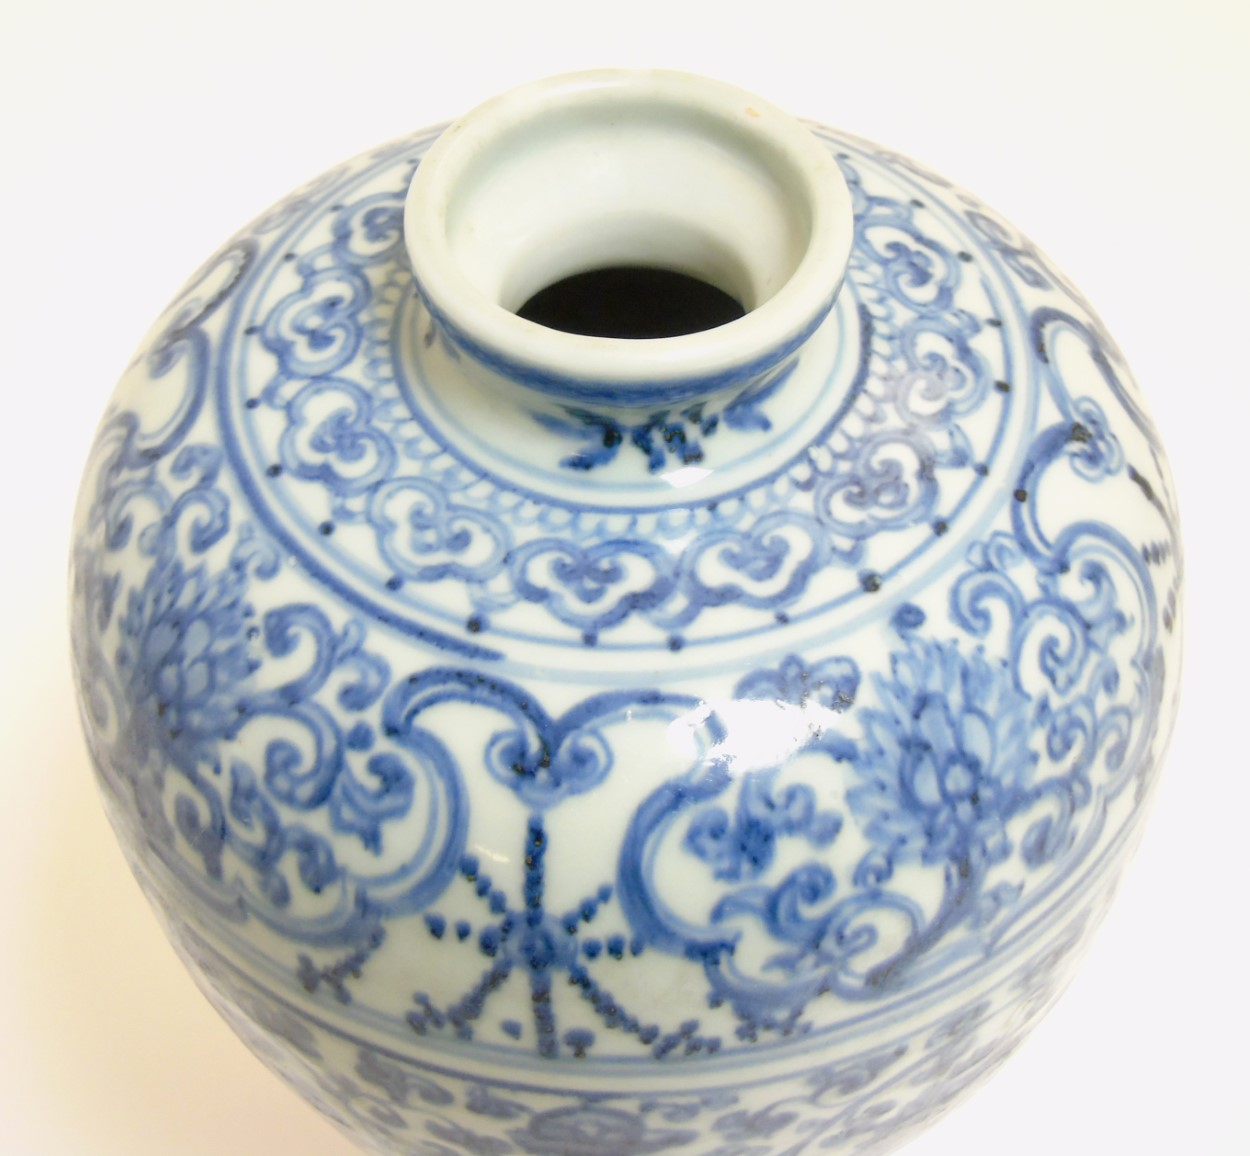 Lot 36 - A Chinese blue and white Meiping vase, with underglaze blue decoration of scrolling lotus,